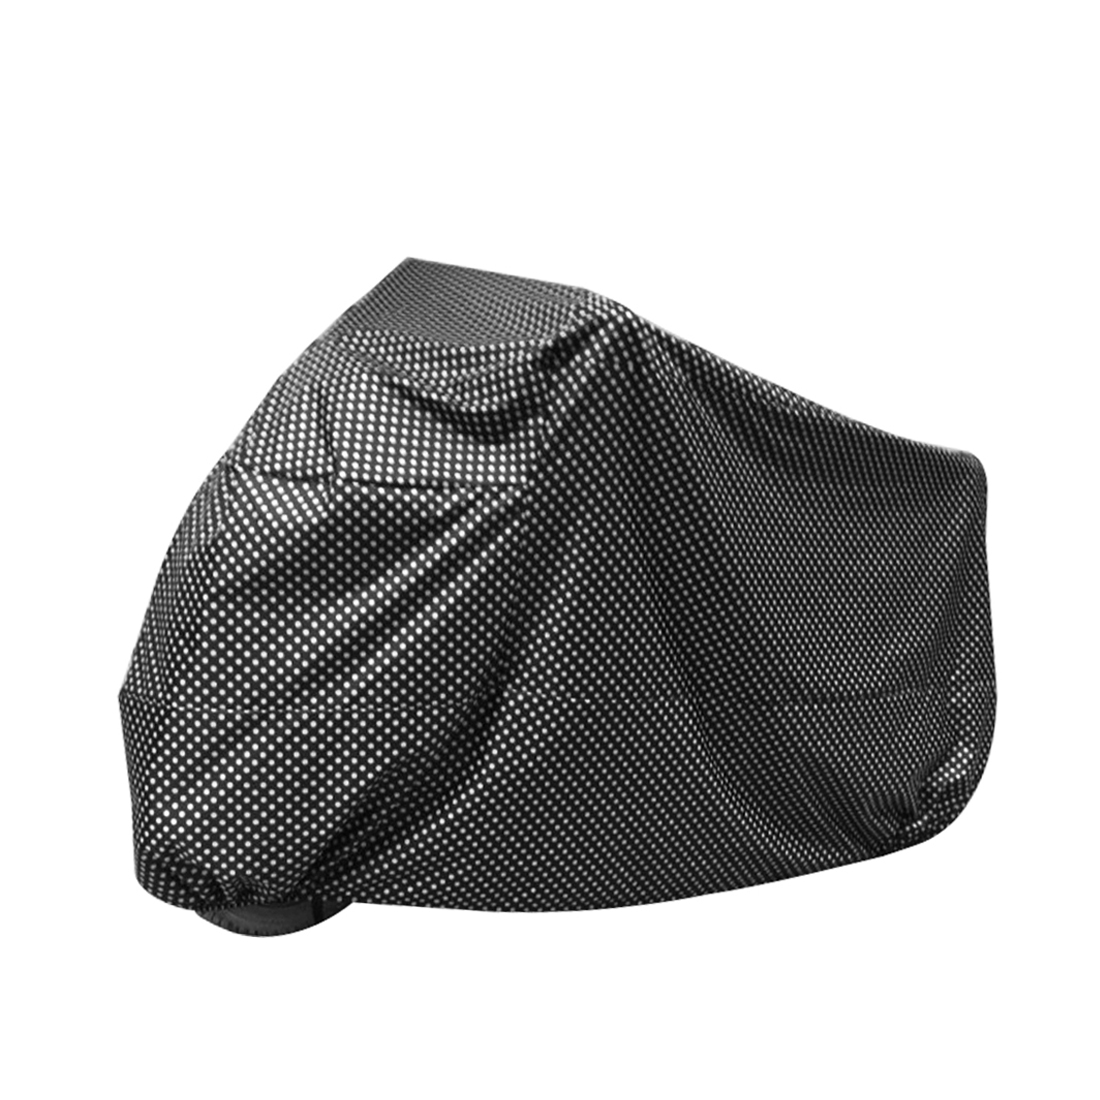 XL Black Dotted Motorcycle Waterproof For Harley Davidson UV Protective Breathable Cover Outdoor